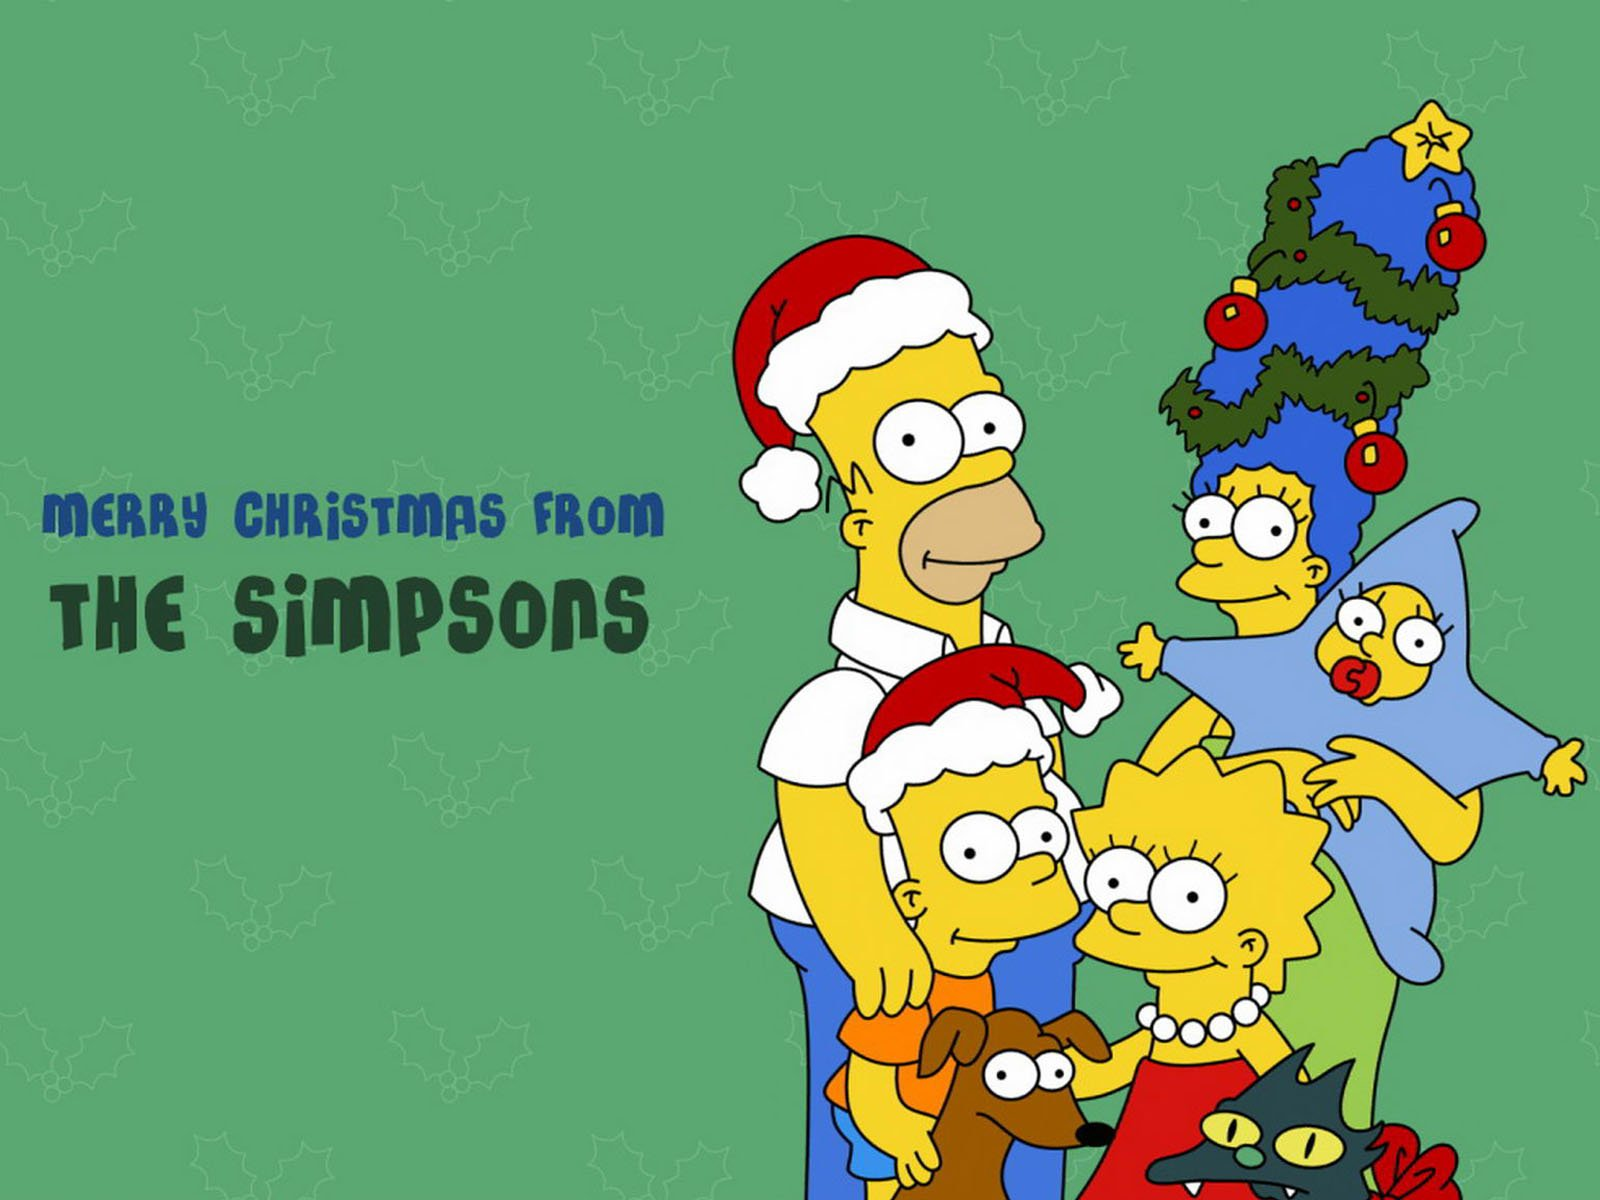 merry christmas from the simpsons wallpaper christmas cartoons